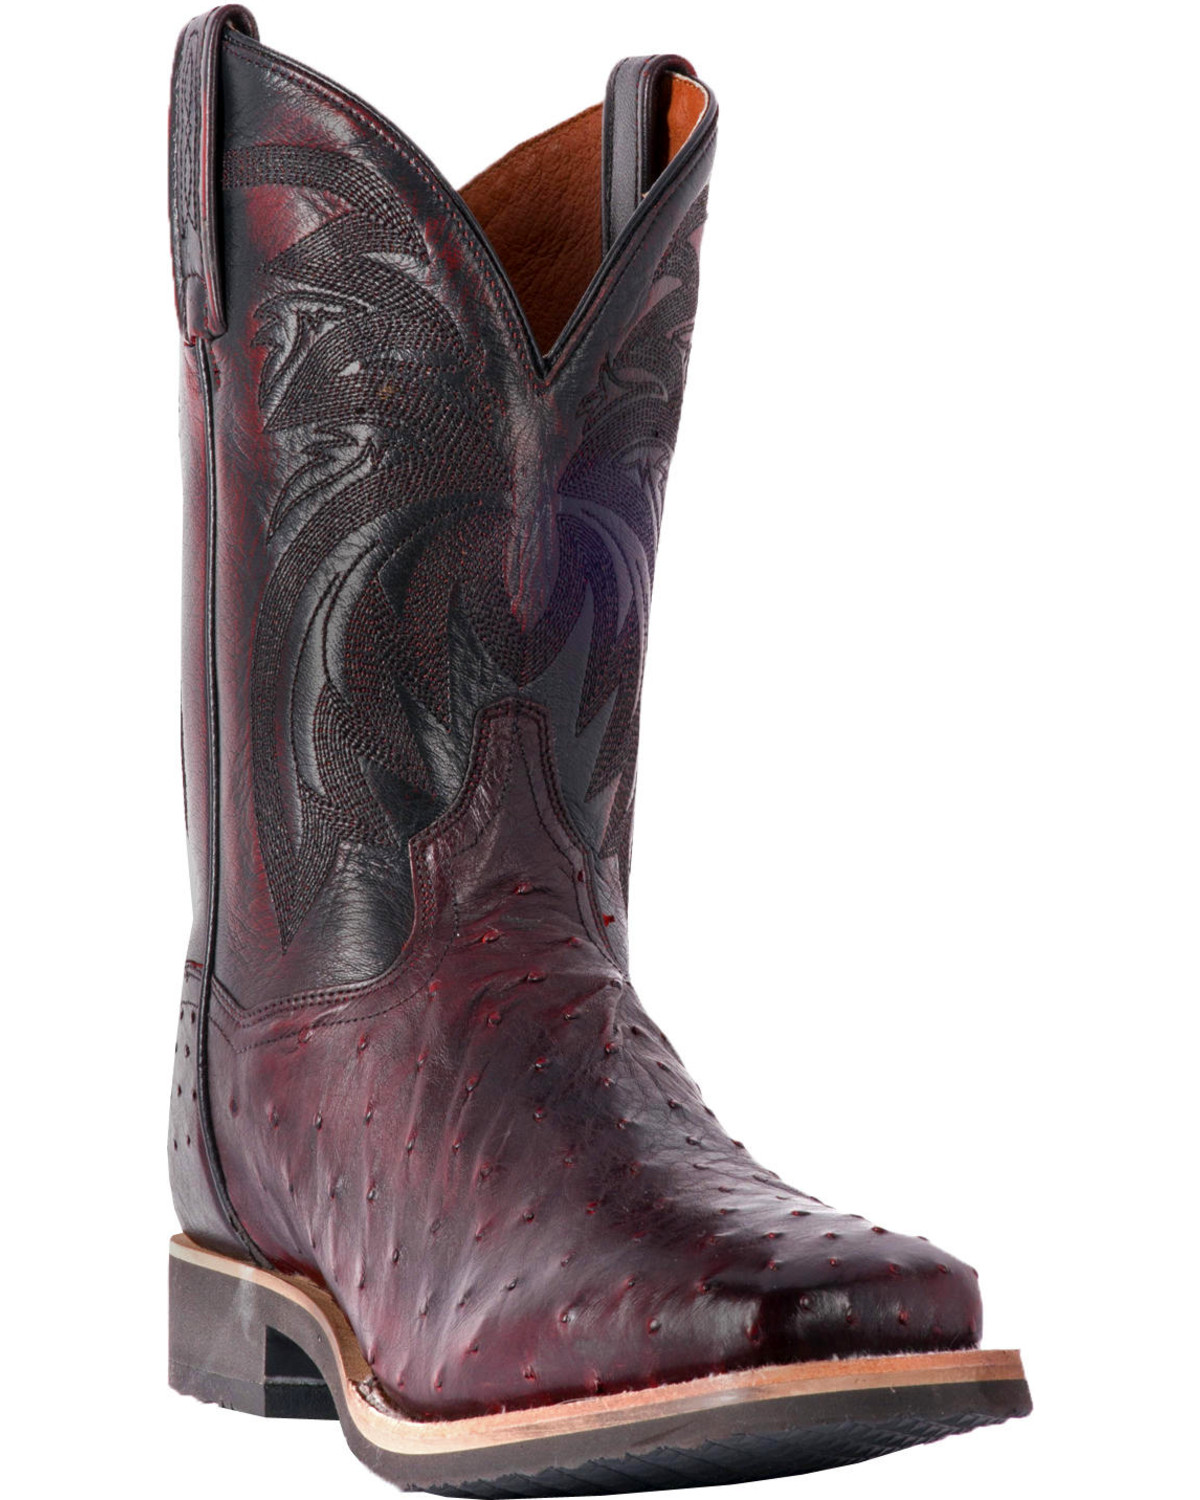 45d9a34fb8c Dan Post Men's Philsgood Black Cherry Full Quill Ostrich Boots - Square Toe